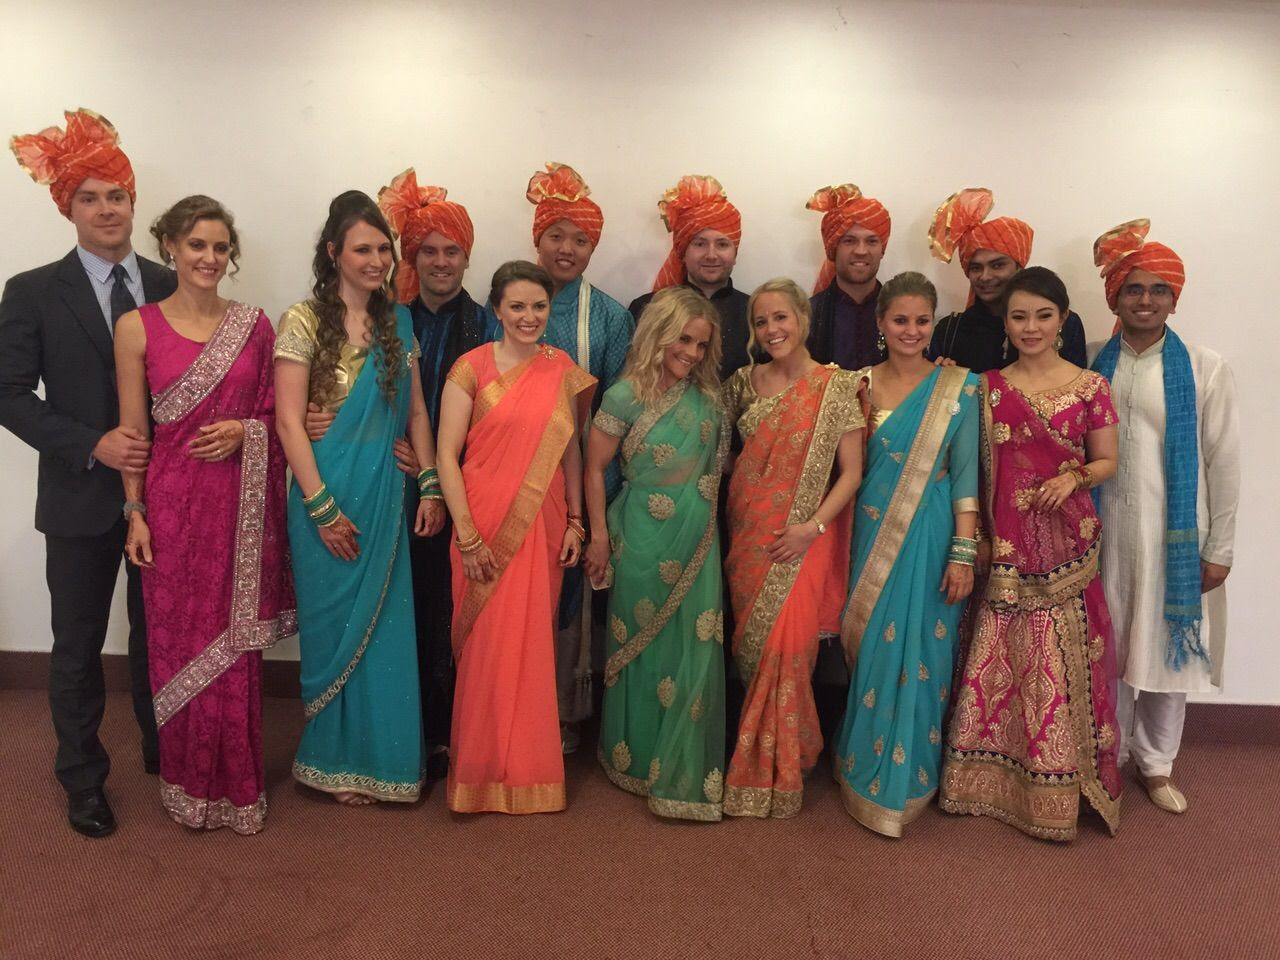 Group Ready for Gunjan's Wedding in Delhi photo 2015-05-16 17.36.02_zpsbypac1er.jpg